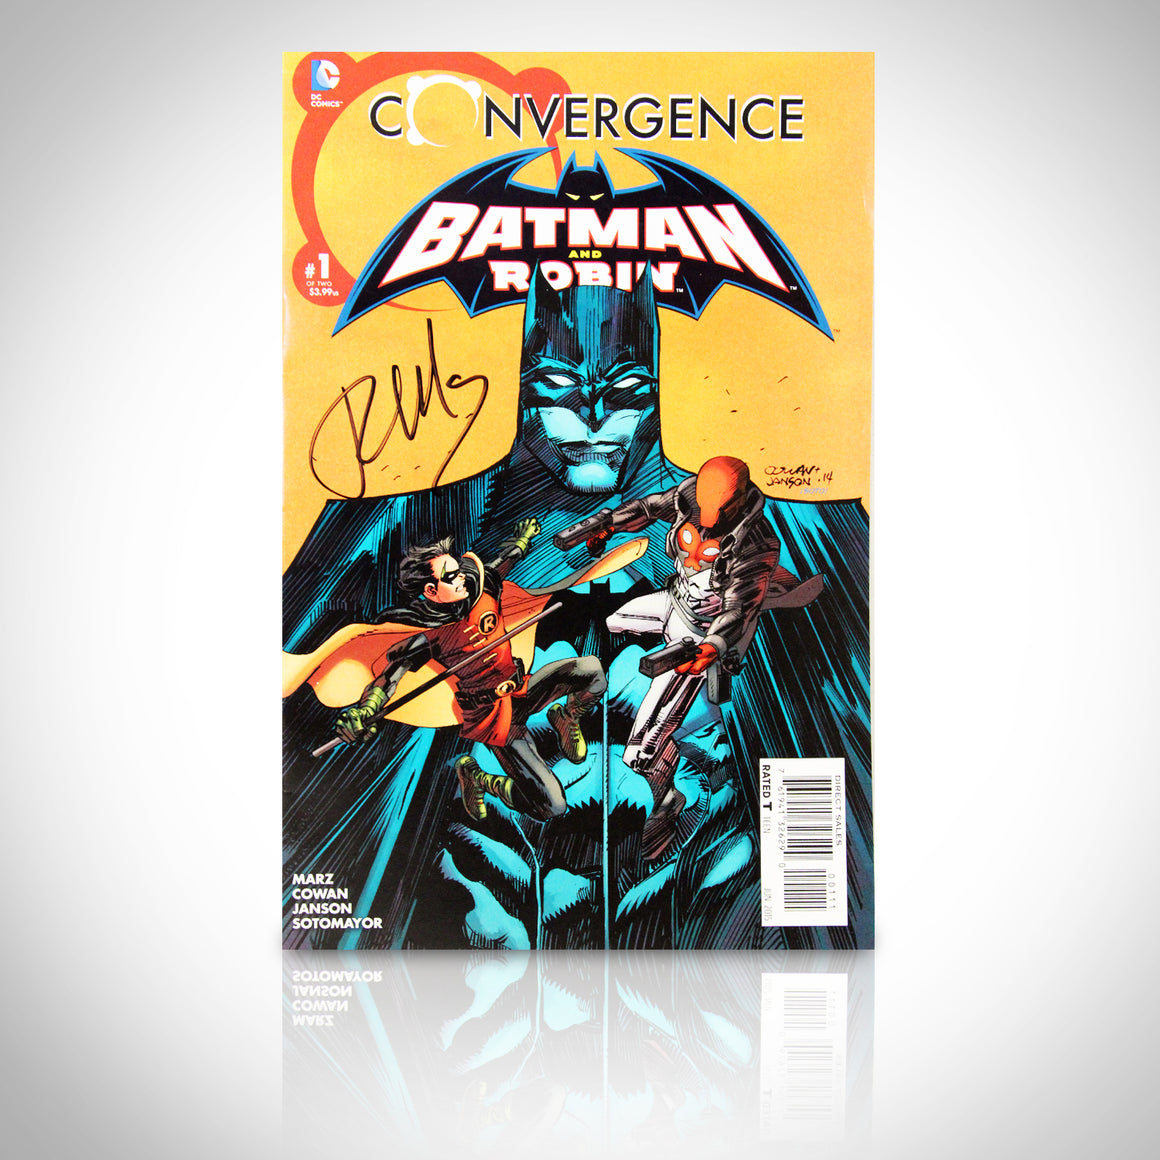 'CONVERGENCE BATMAN & ROBIN #1 - HANDSIGNED BY RON MARZ' Comic Book